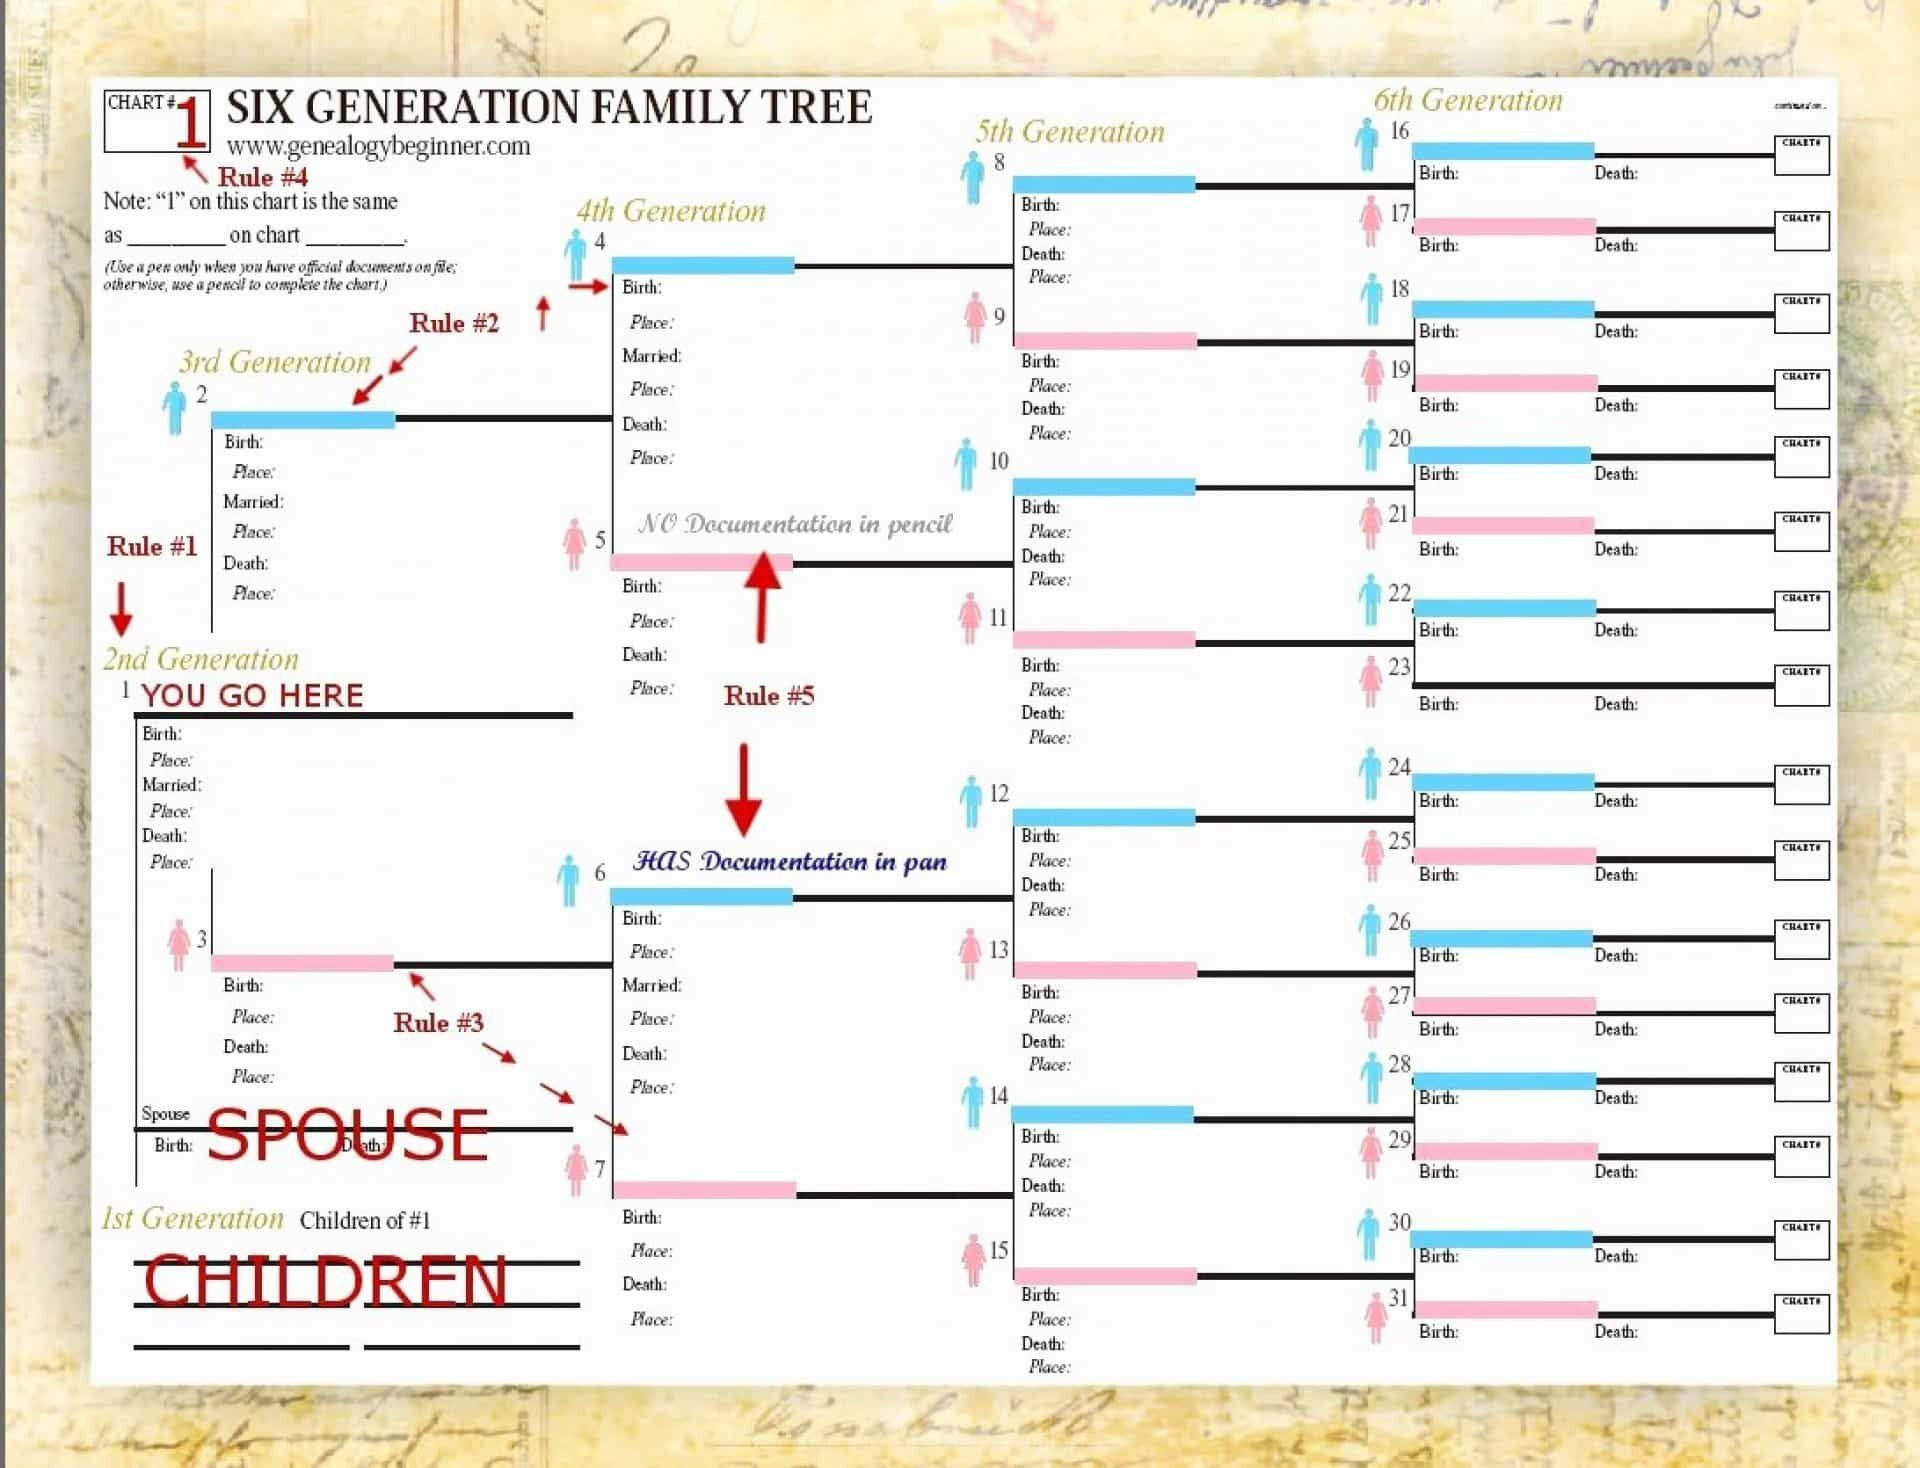 003 Magnificent Excel Family Tree Template Picture  7 Generation 41920